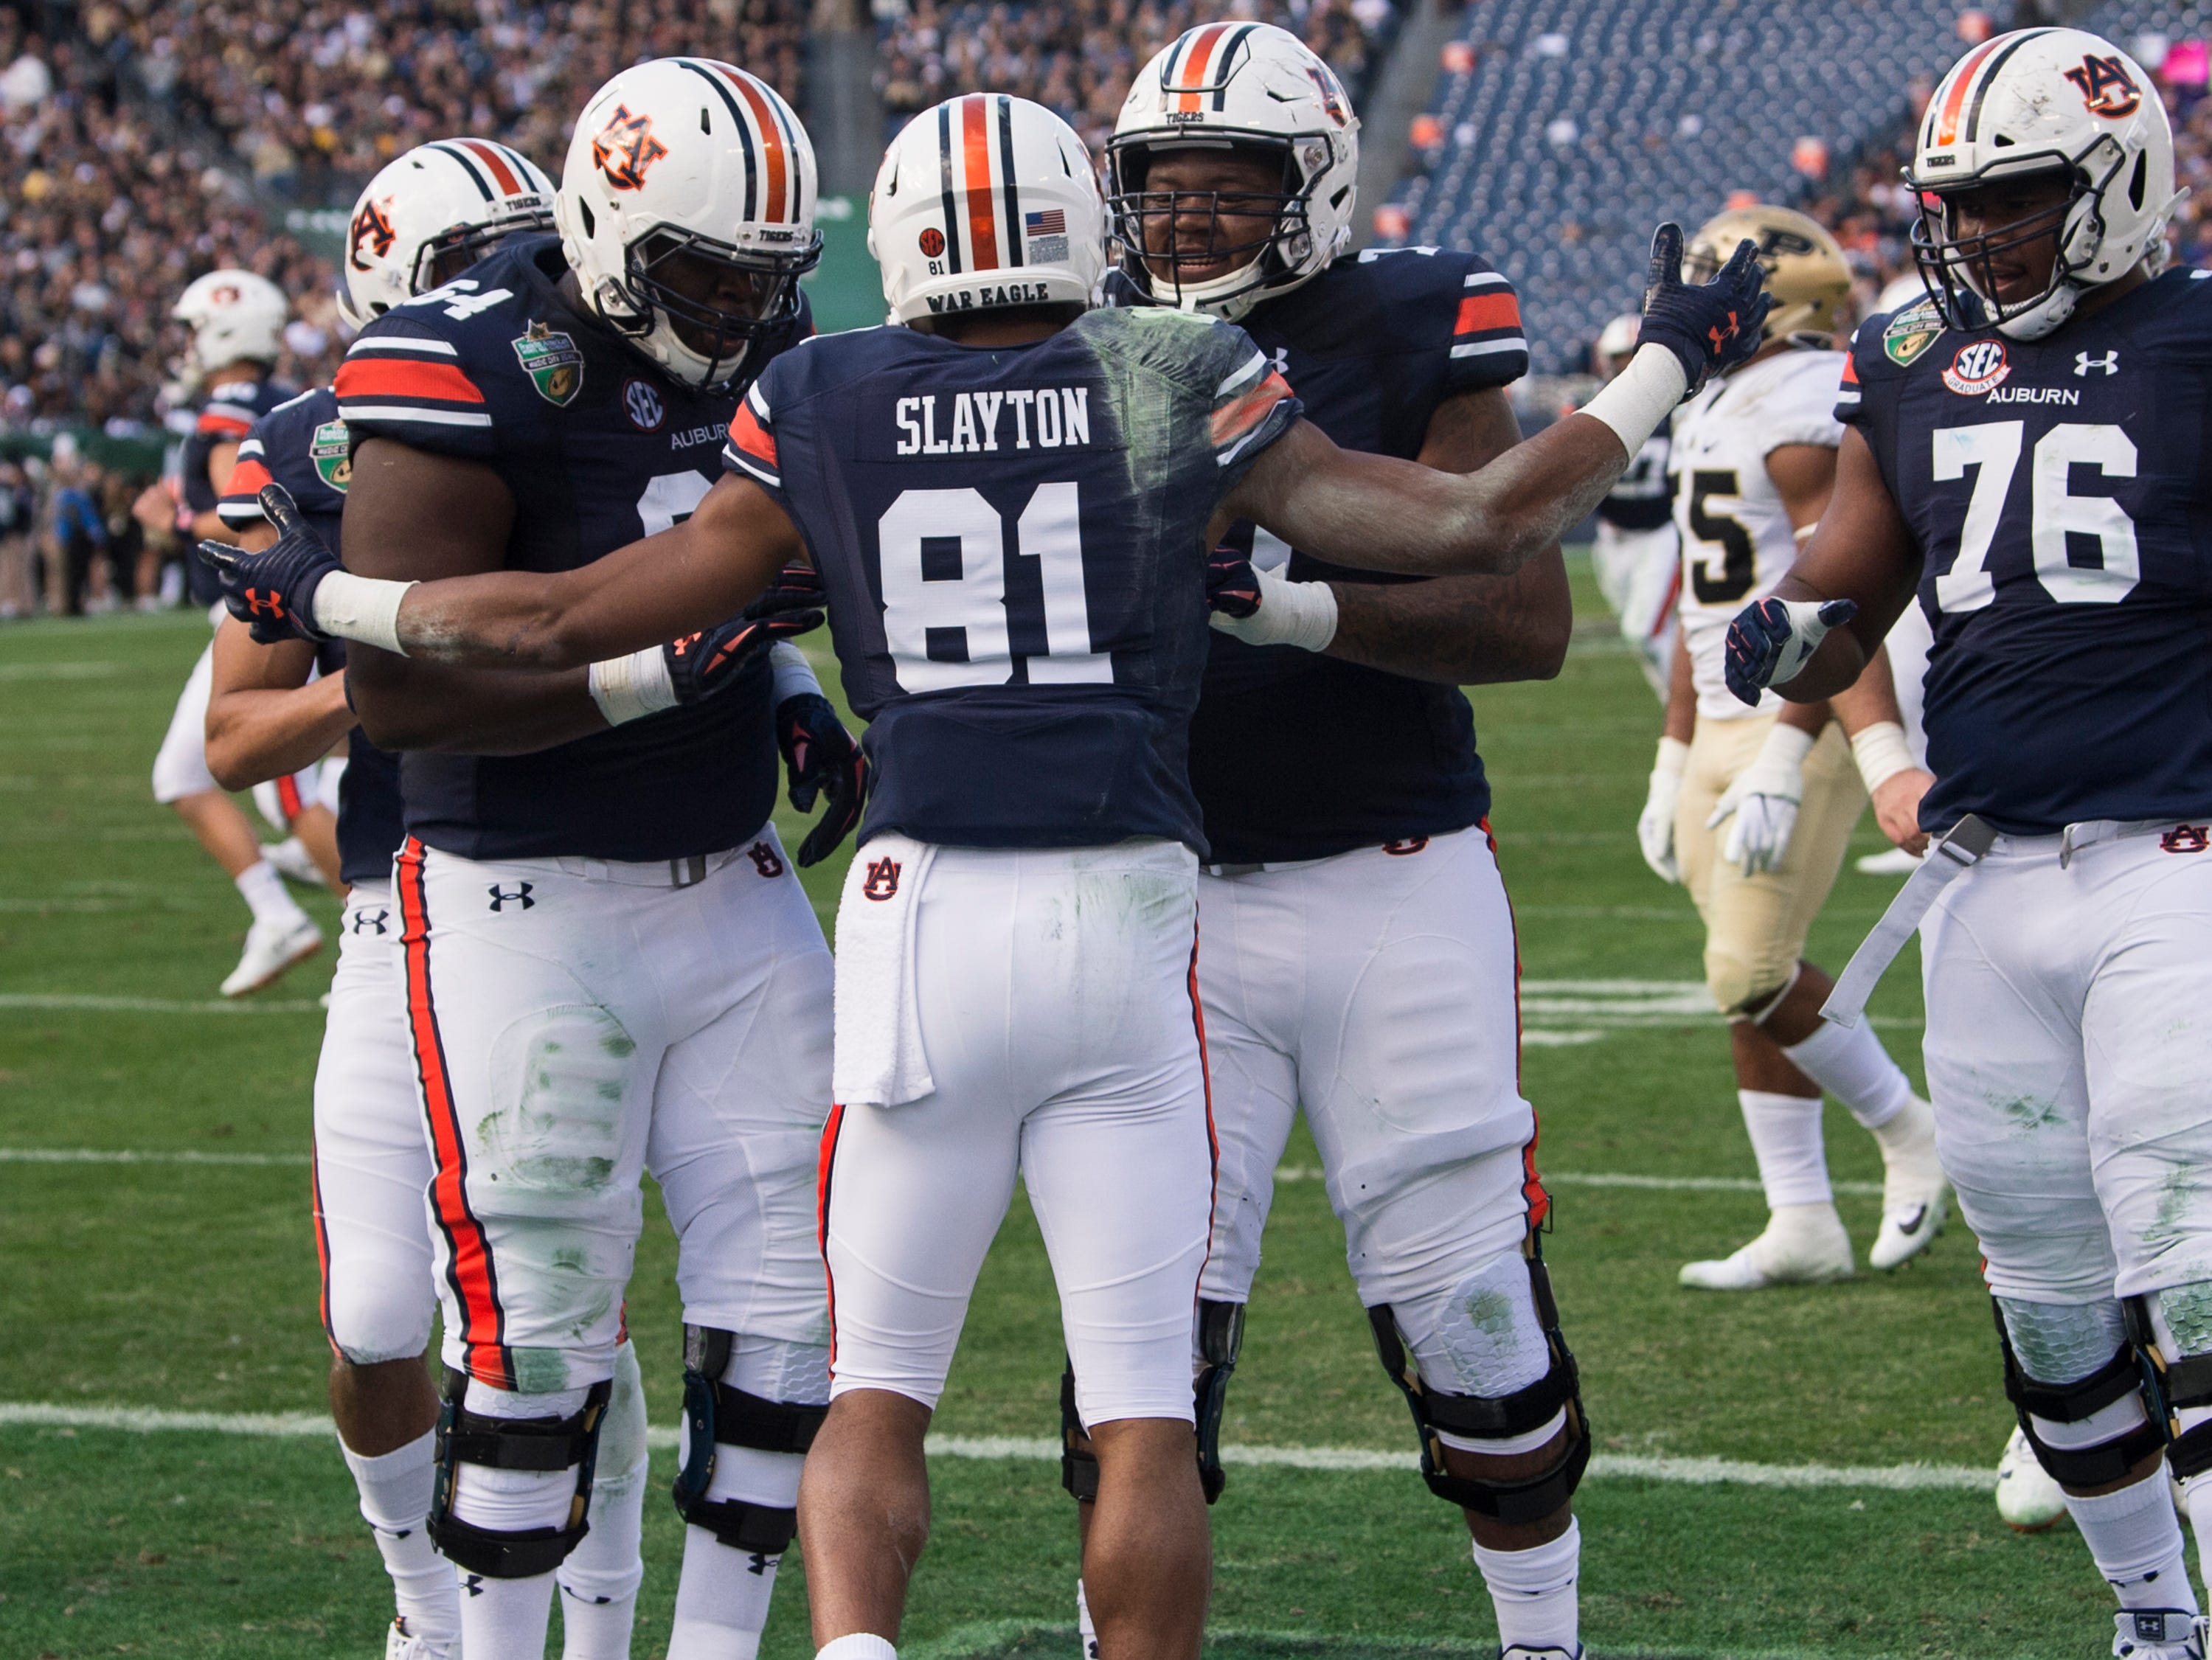 Auburn wide receiver Darius Slayton (81) celebrates with his team after catching a touchdown pass during the Music City Bowl at Nissan Stadium in Nashville, Tenn., on Friday, Dec. 28, 2018. Auburn leads Purdue 56-7 at halftime.